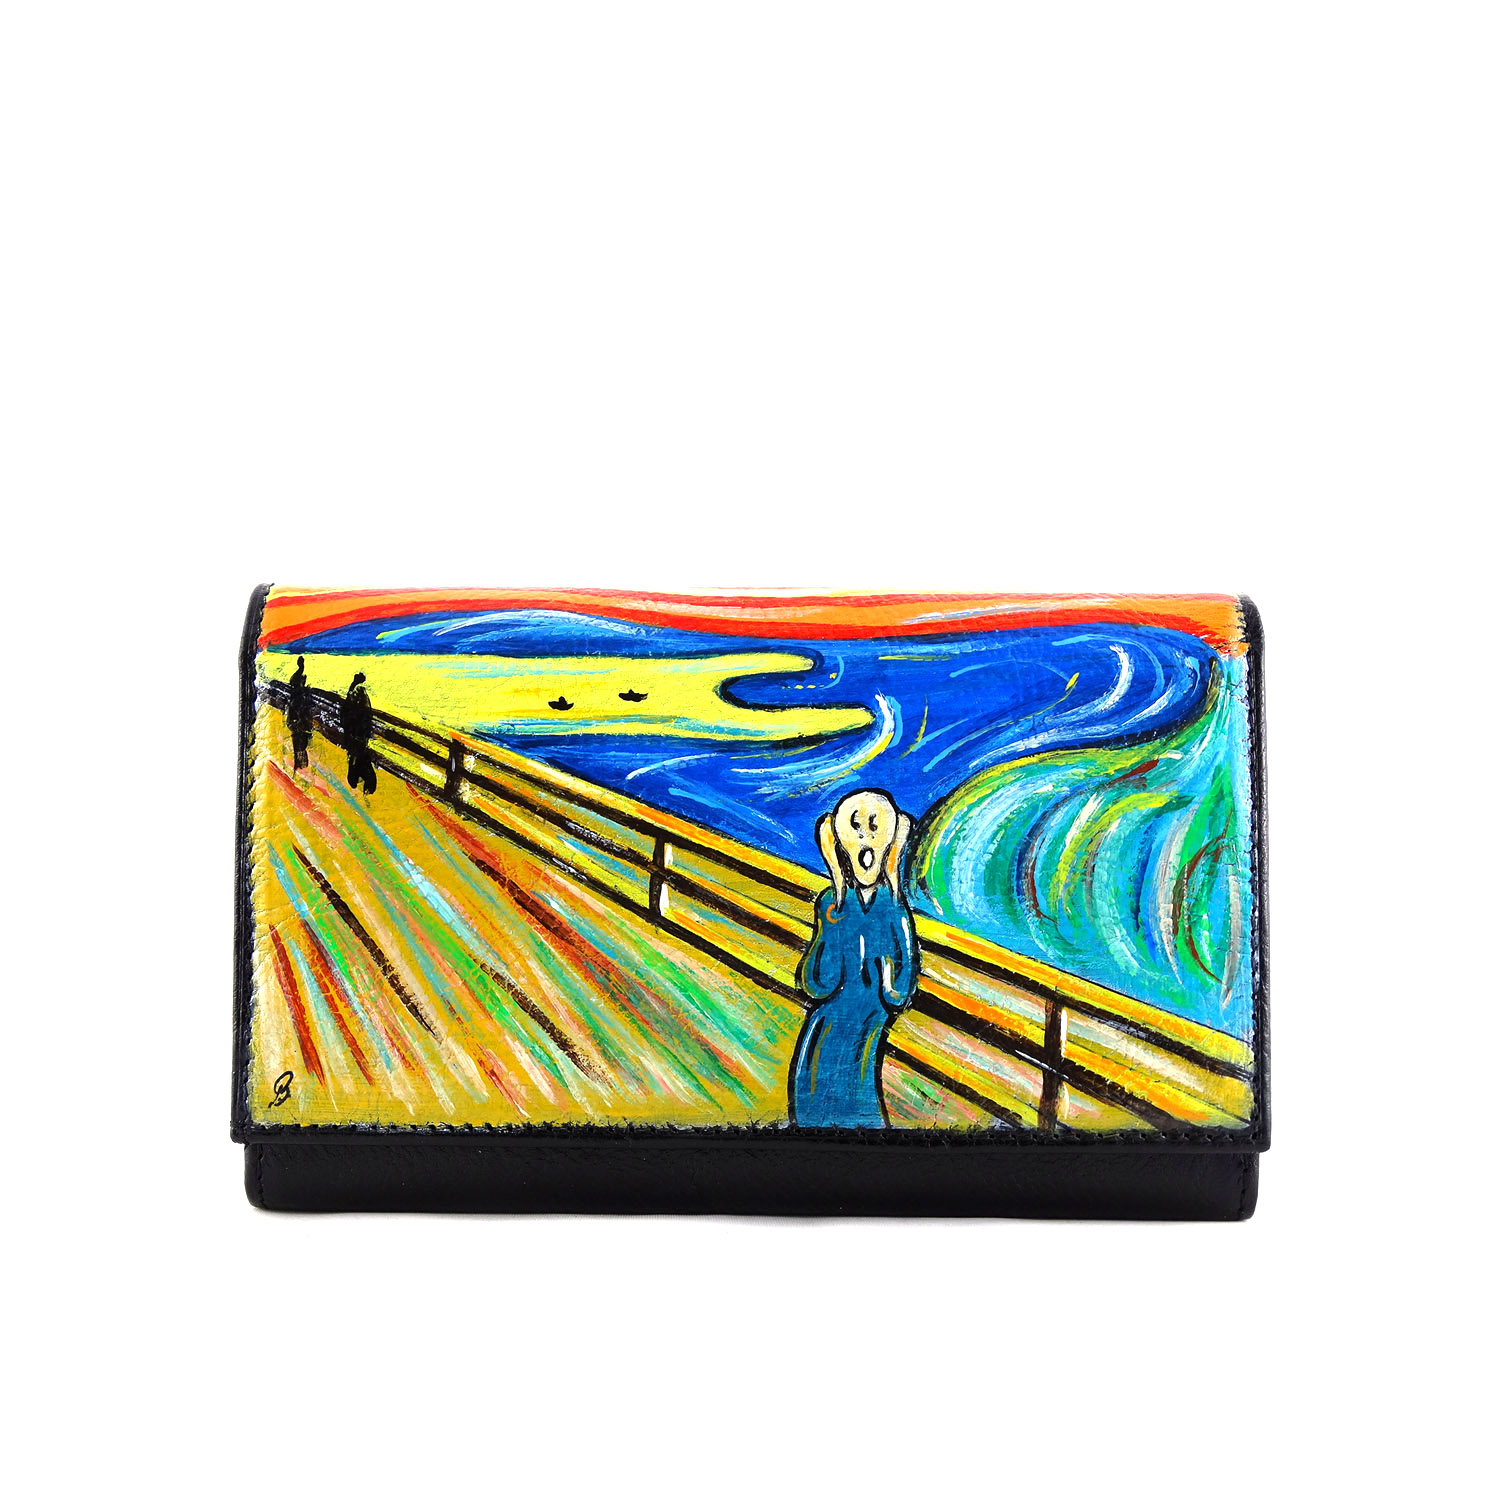 Hand painted wallet - The Scream by Munch